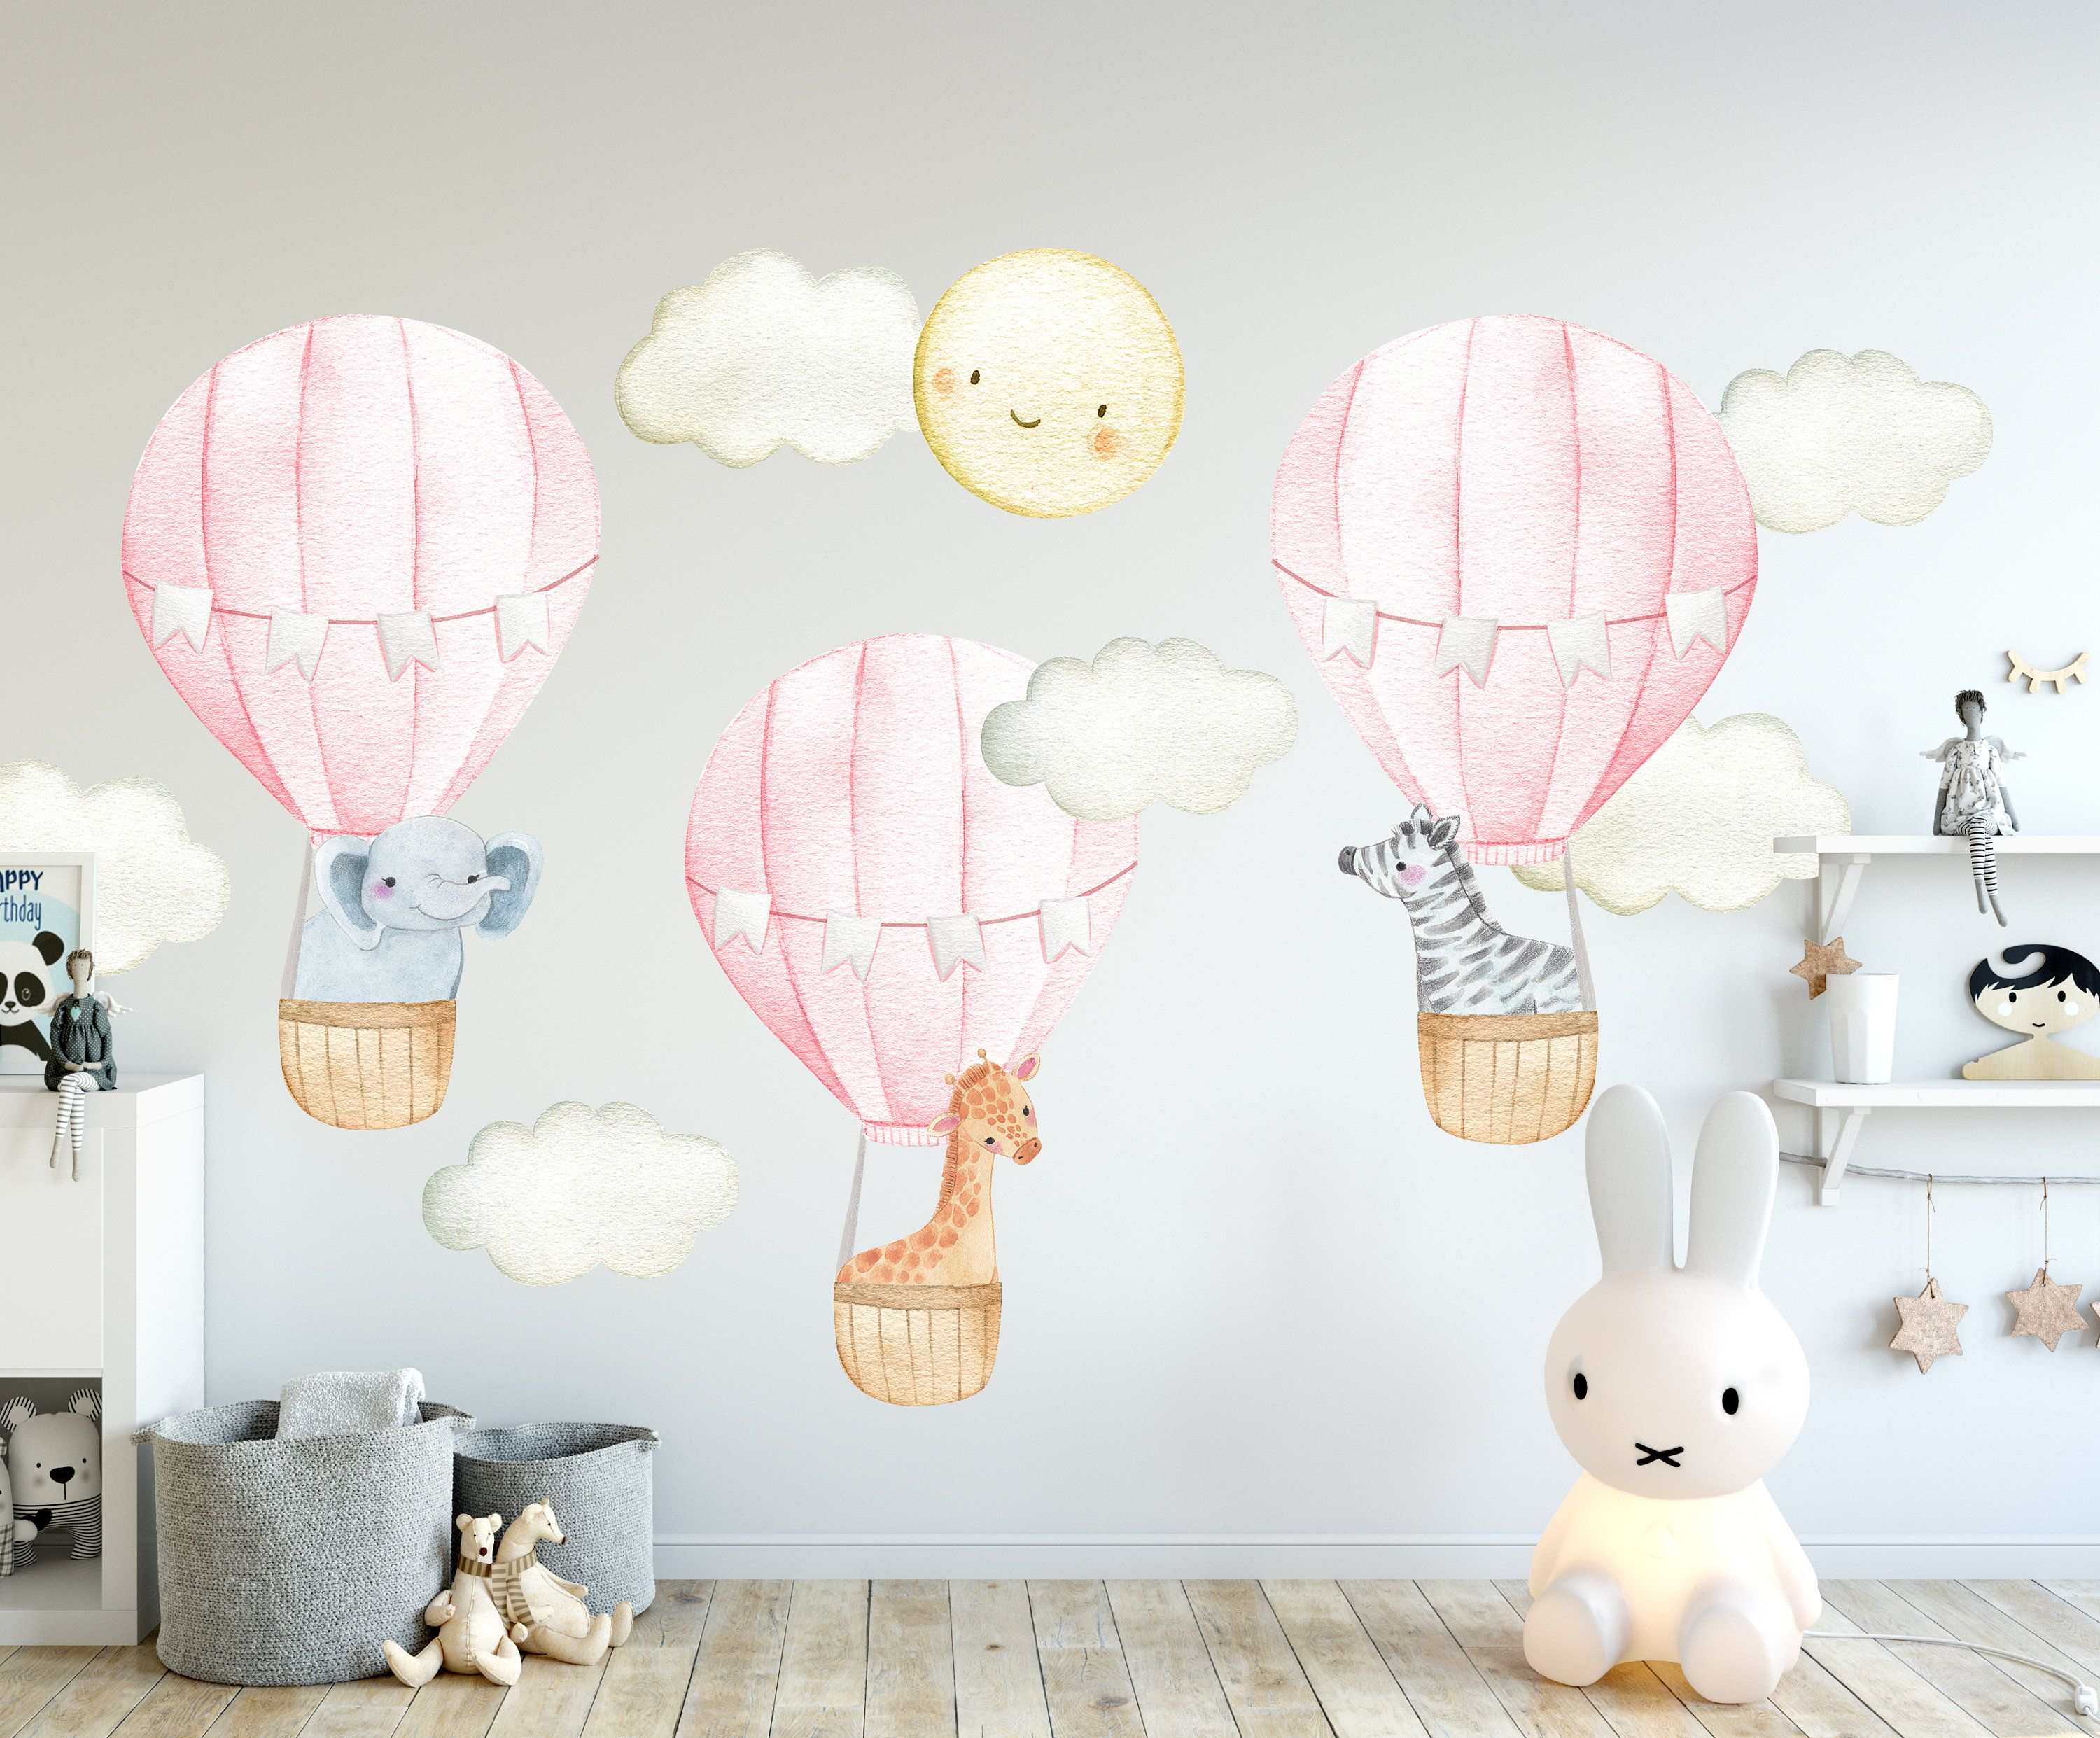 Hot Air Balloon Wall Decal Hot Air Balloon Wall Decor Etsy Nursery Wall Decals Hot Air Balloon Nursery Decor Hot Air Balloon Nursery